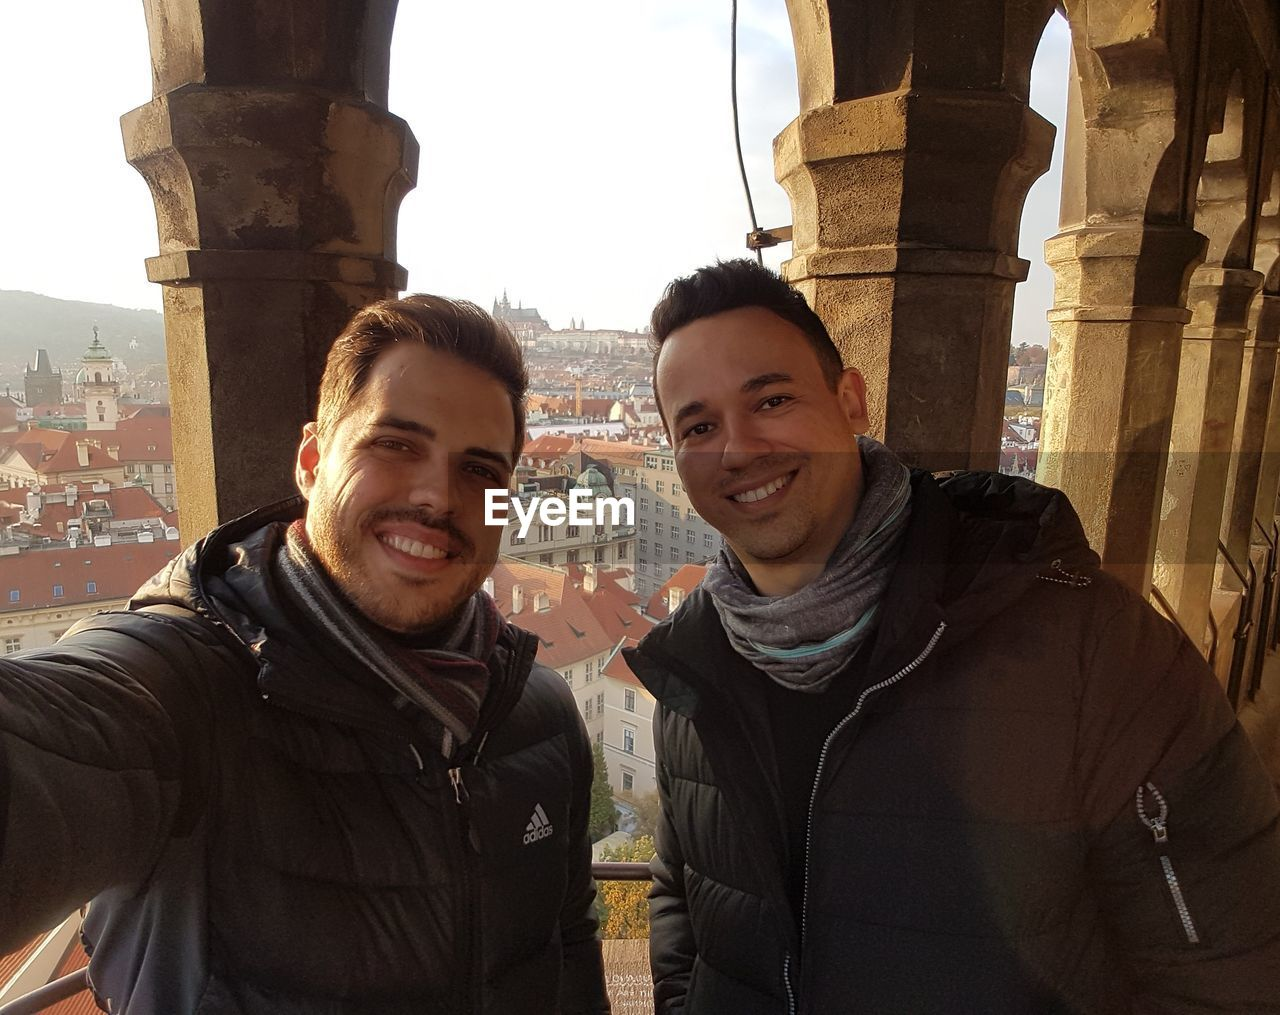 smiling, portrait, architecture, looking at camera, young adult, built structure, two people, young men, real people, tourism, happiness, history, leisure activity, togetherness, friendship, lifestyles, selfie, city, outdoors, day, young women